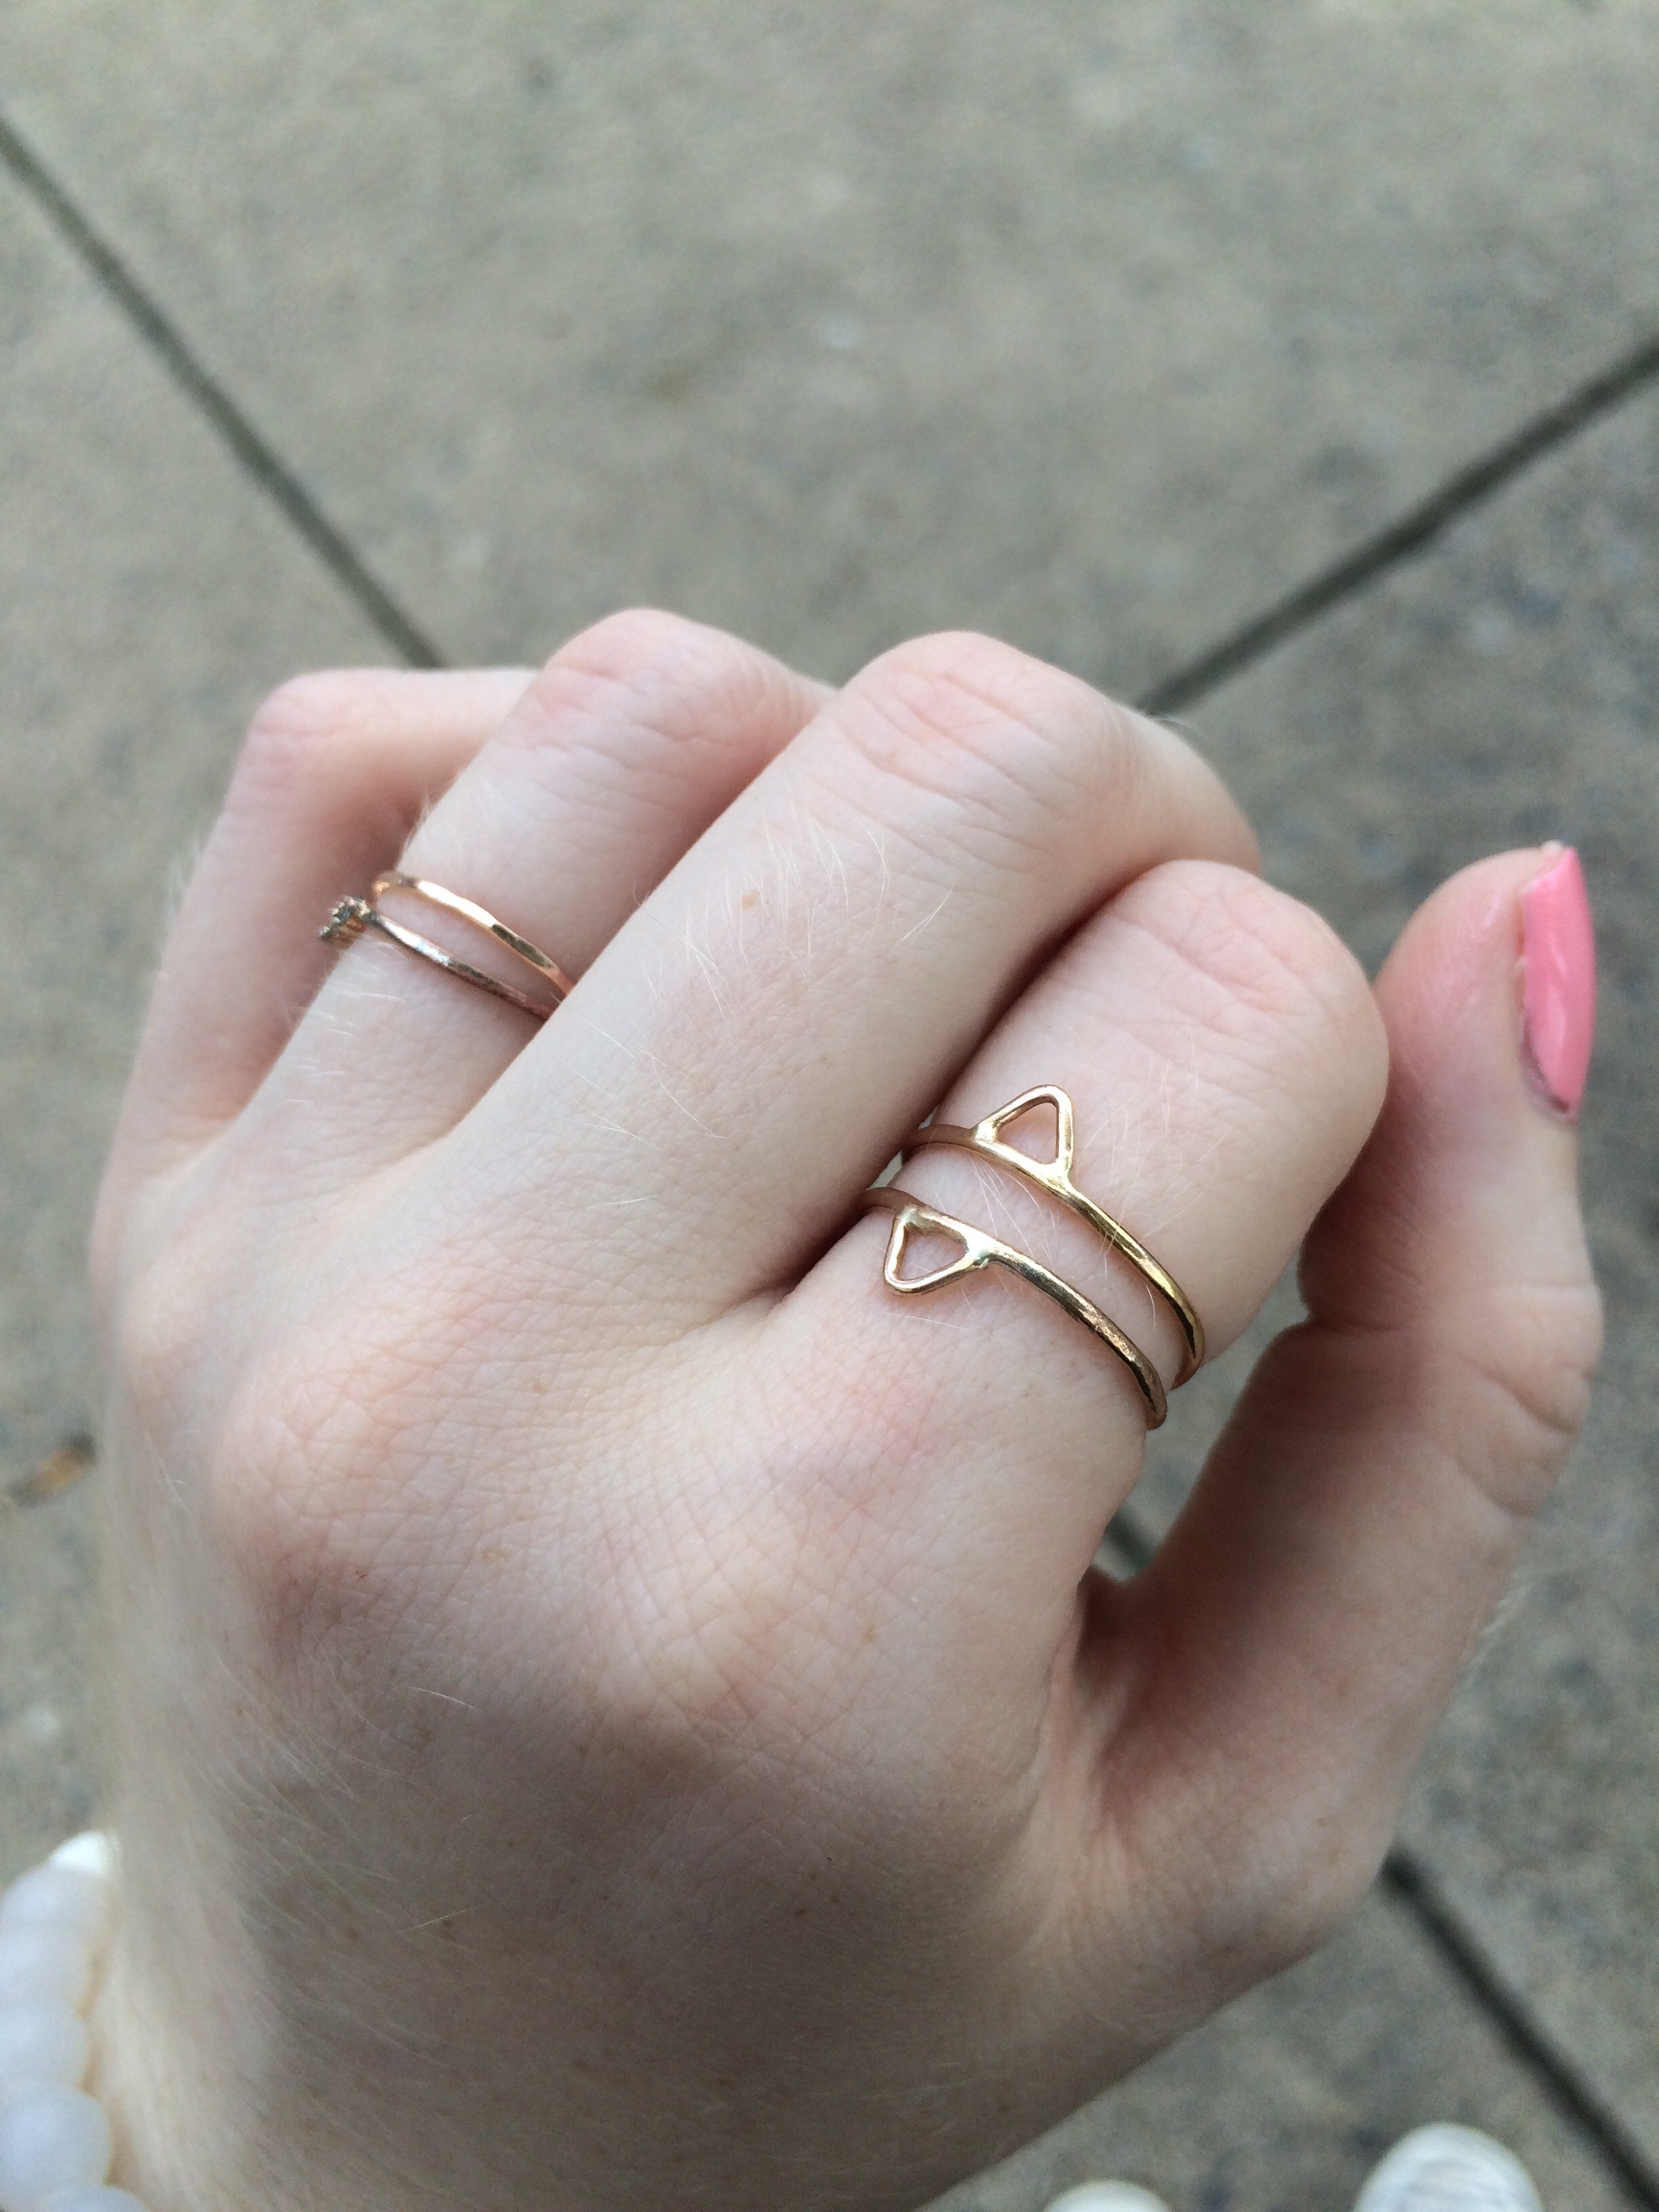 The unadorned rose gold stacking ring on my ring finger is also one of Cheyenne's!